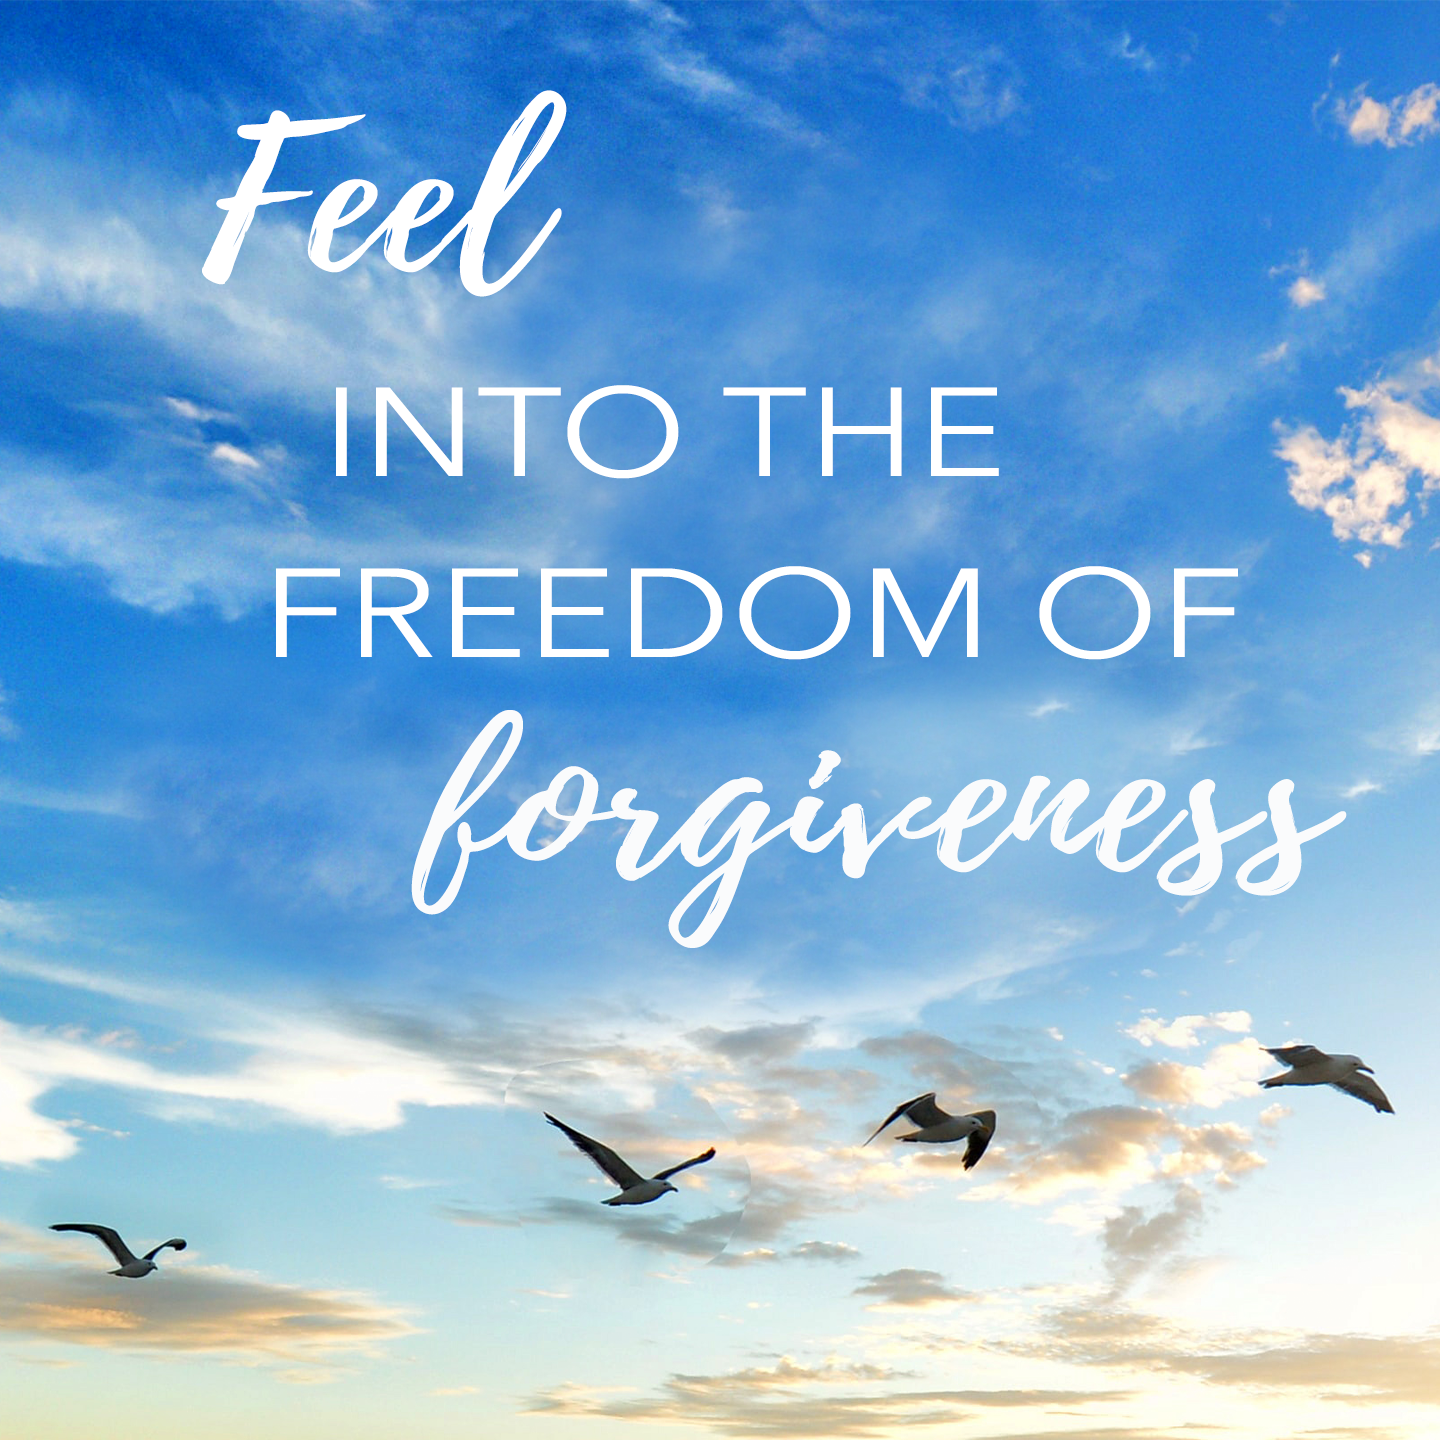 Feel into the freedom of forgiveness.